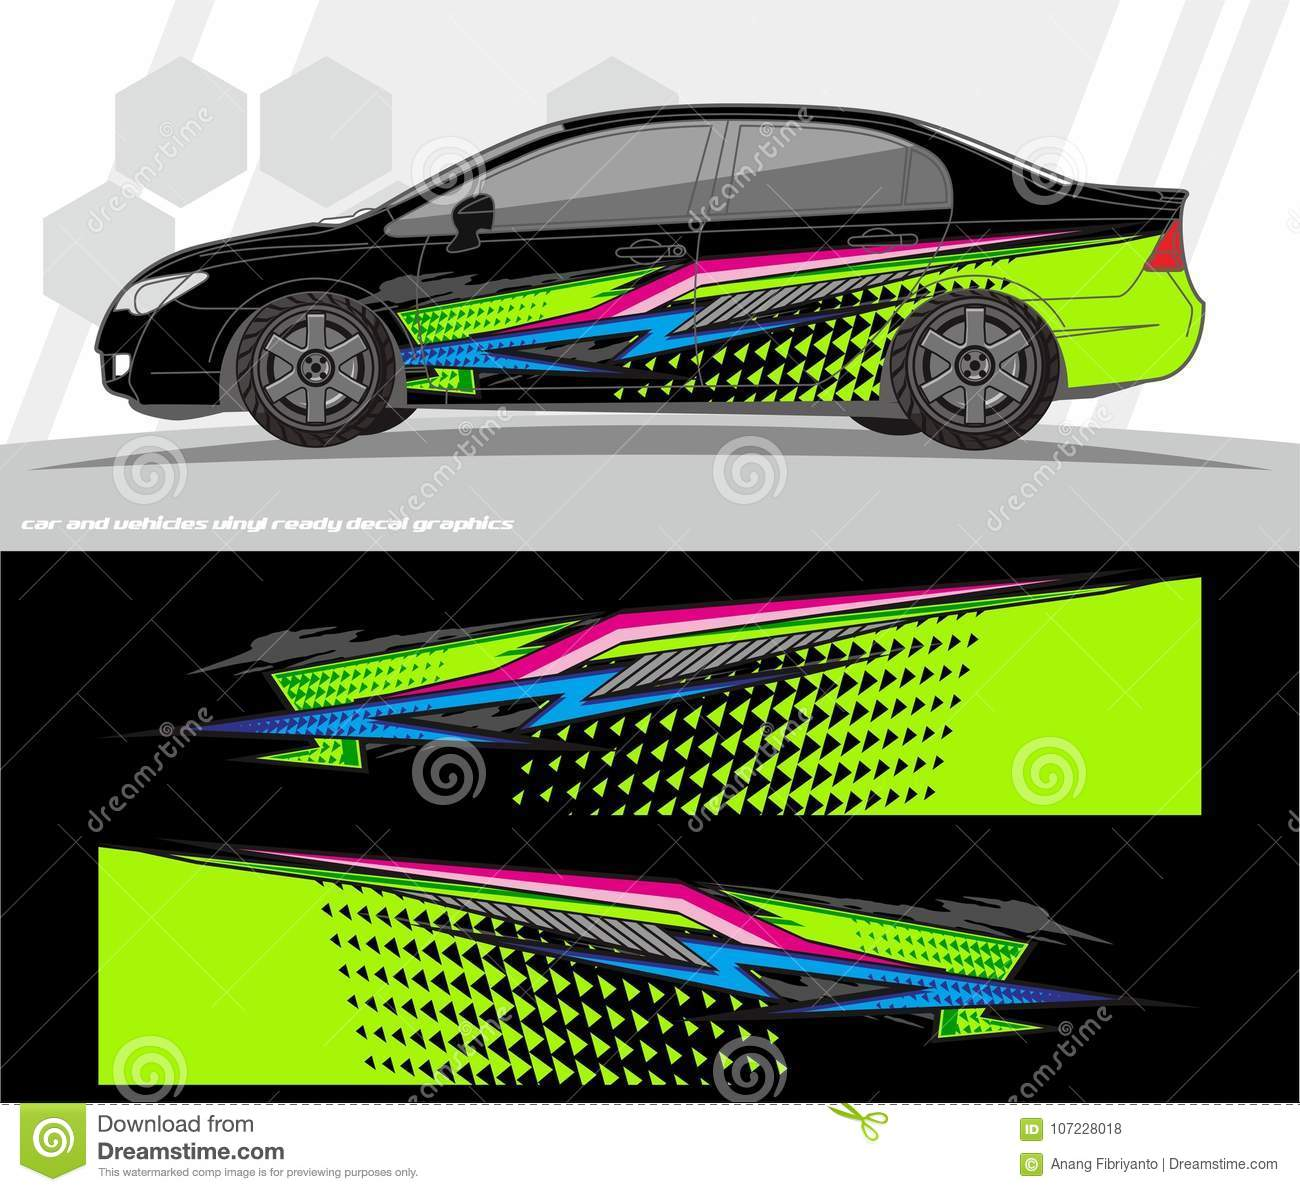 Car and vehicles wrap decal graphics kit vector designs ready to print and cut for